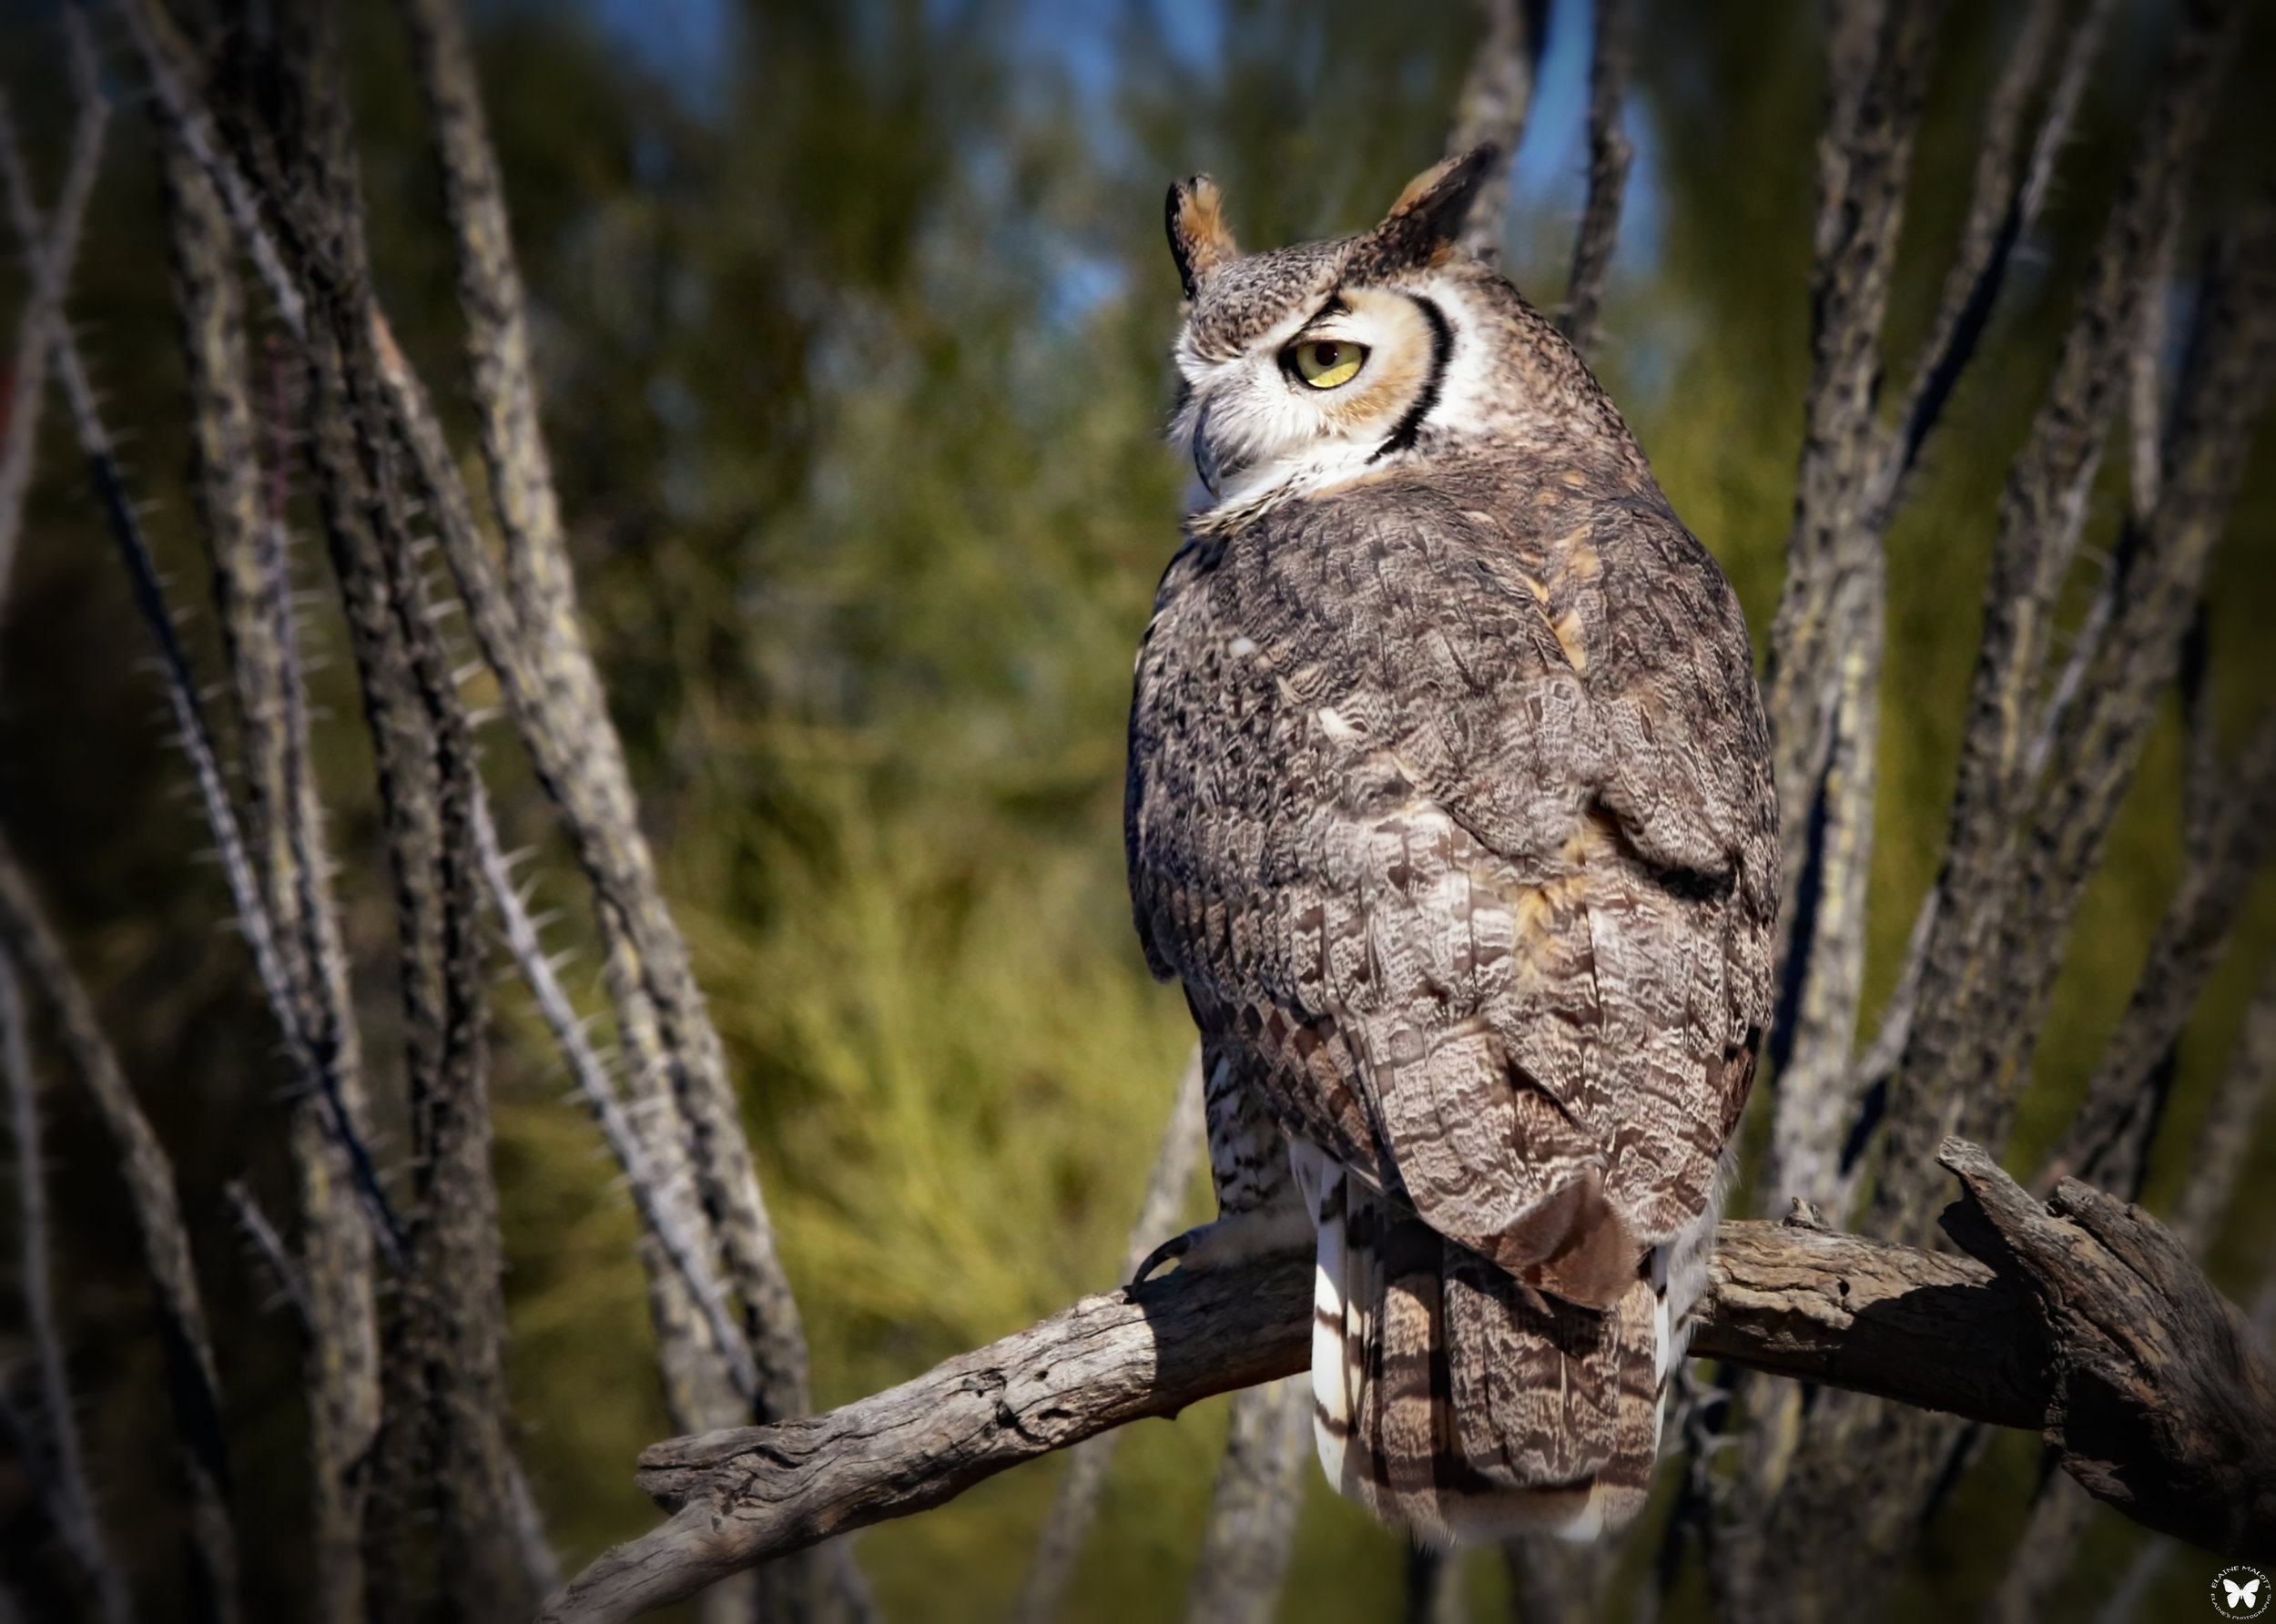 """- Great Horned Owl (Bubo virginianus)Great Horned Owls live in mixed woods and open fields, grasslands, deserts, and urban areas. They weigh 32.1-88.2 oz. with a wingspan of 39.8-57.1 in. They have binocular vision, meaning their forward vision is great whereas their peripheral is poor. Great horned owls eat rabbits, rodents, other birds, insects, amphibians, and reptiles. They give off low """"hoo's"""" or whistle, bark, and coo. They are protected on the US Migratory Bird lists.Photo Credits: Elaine Malott"""